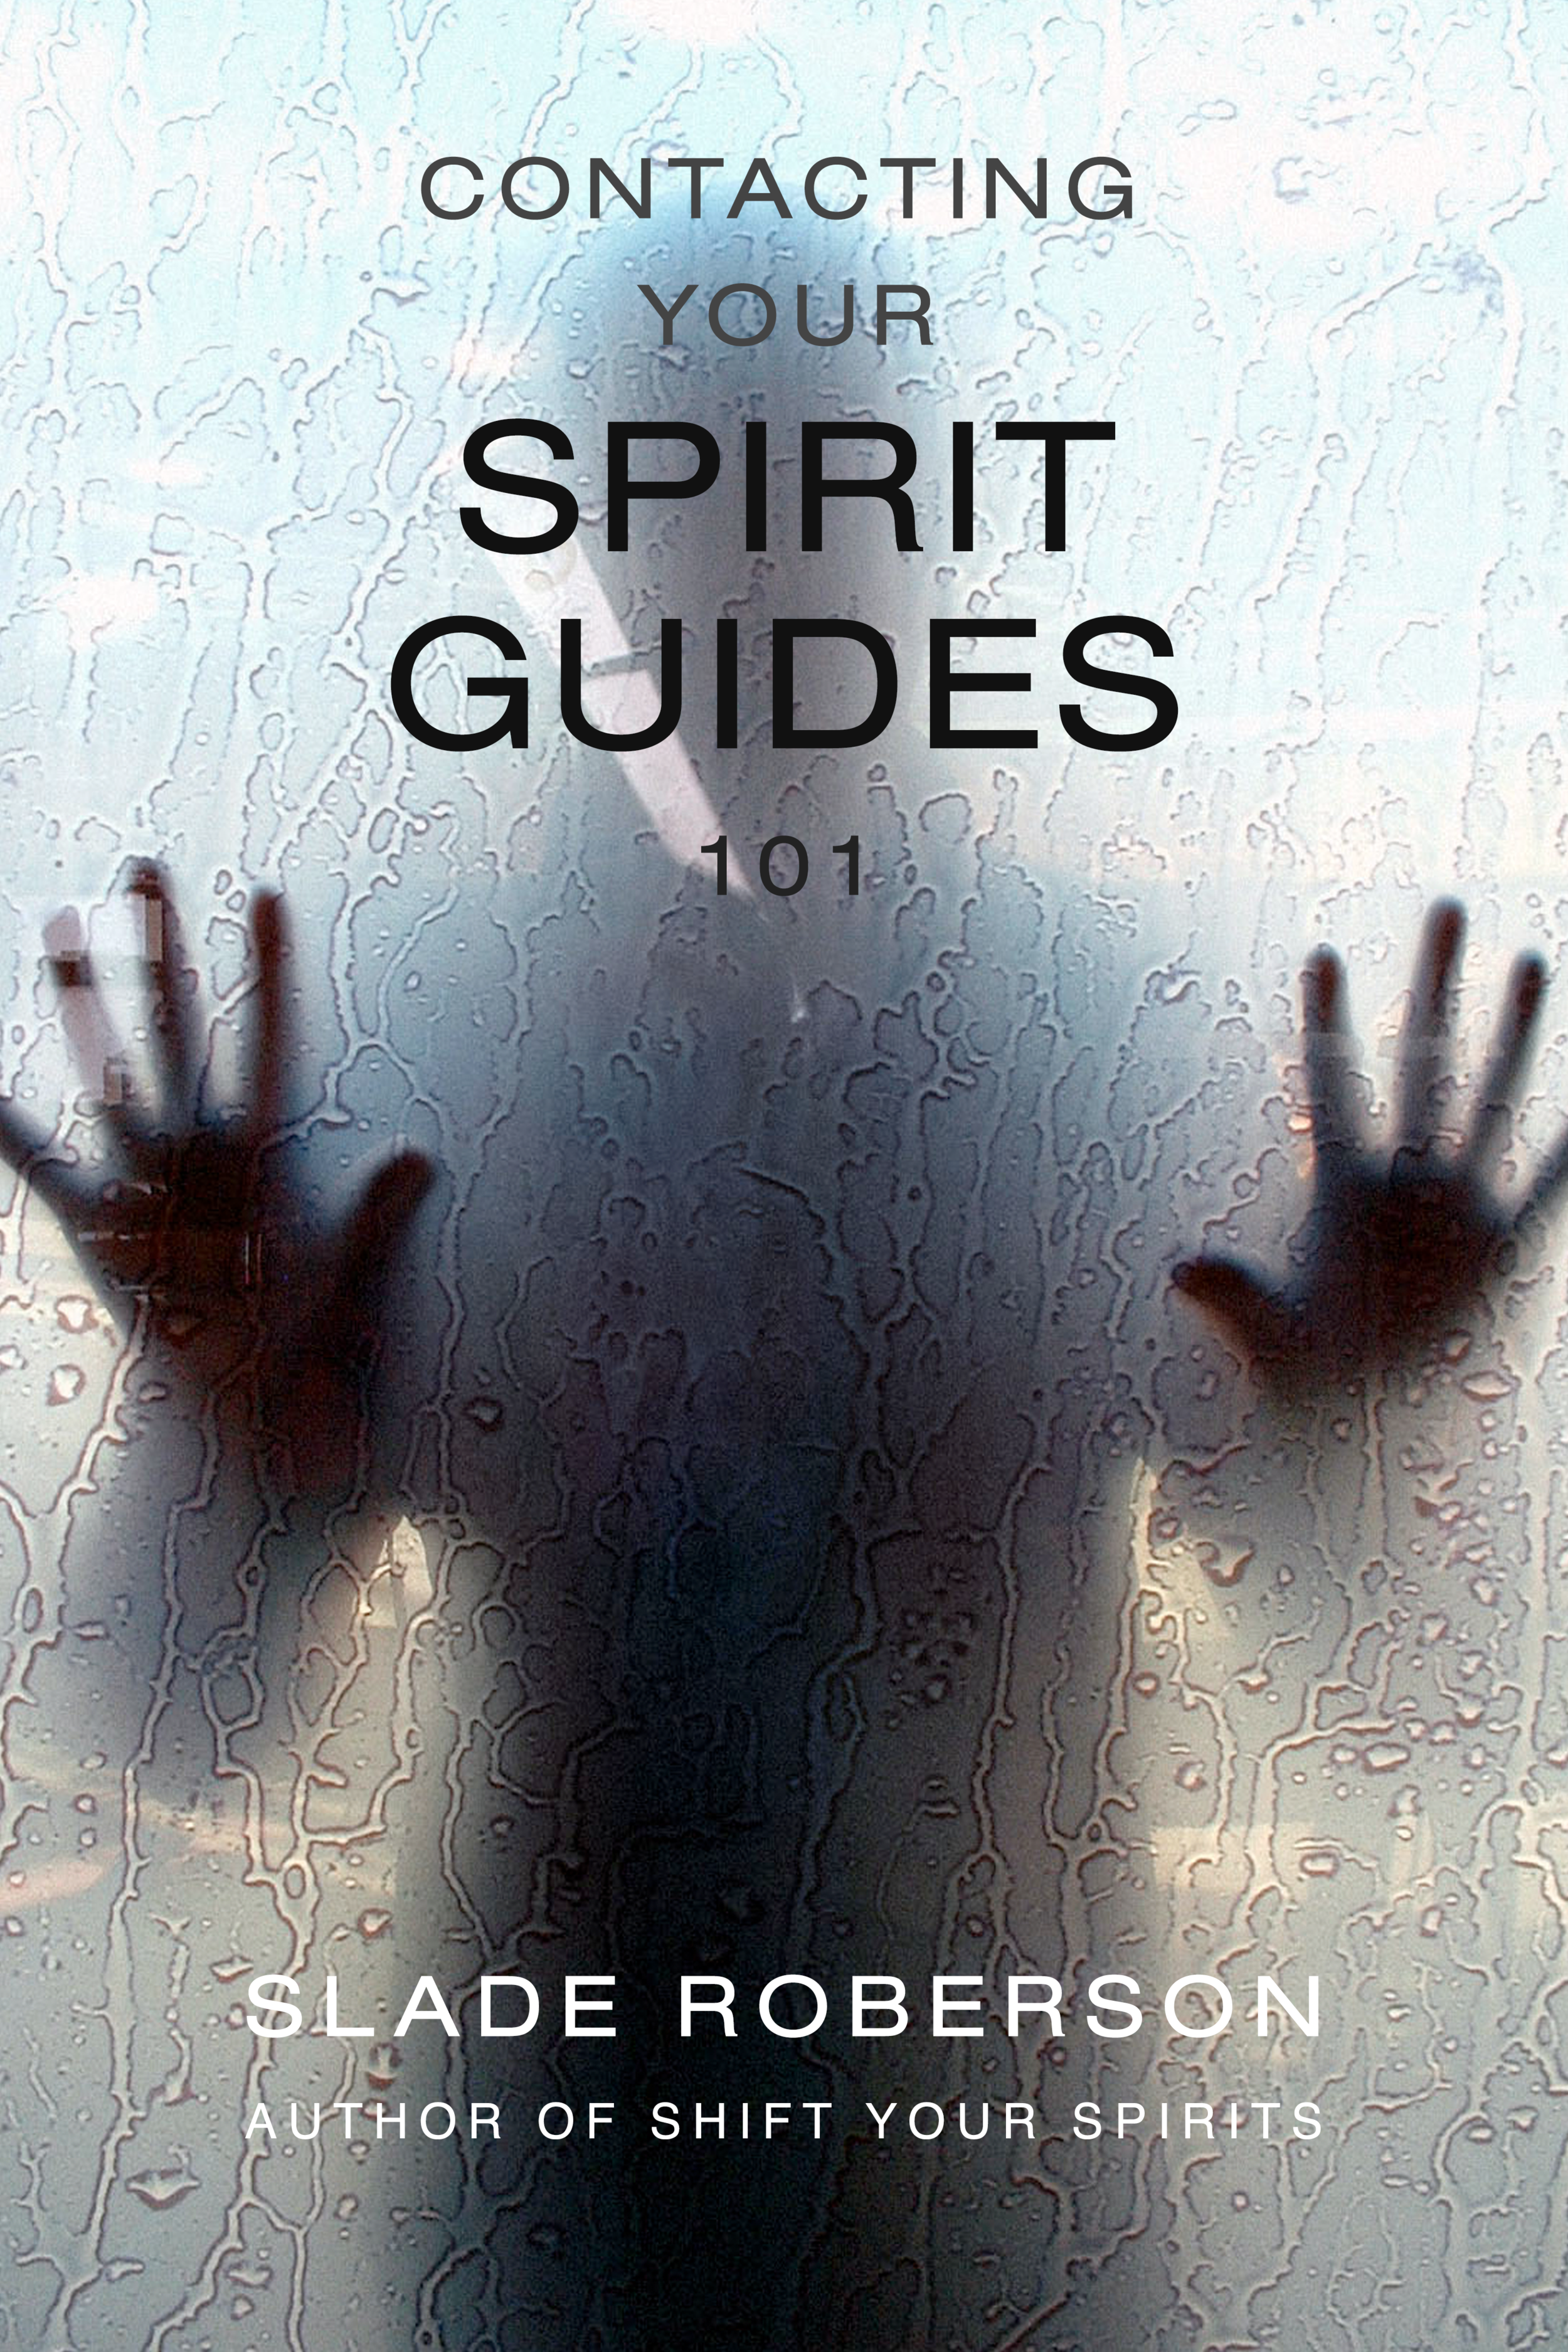 SG101-COVER-full-size.png